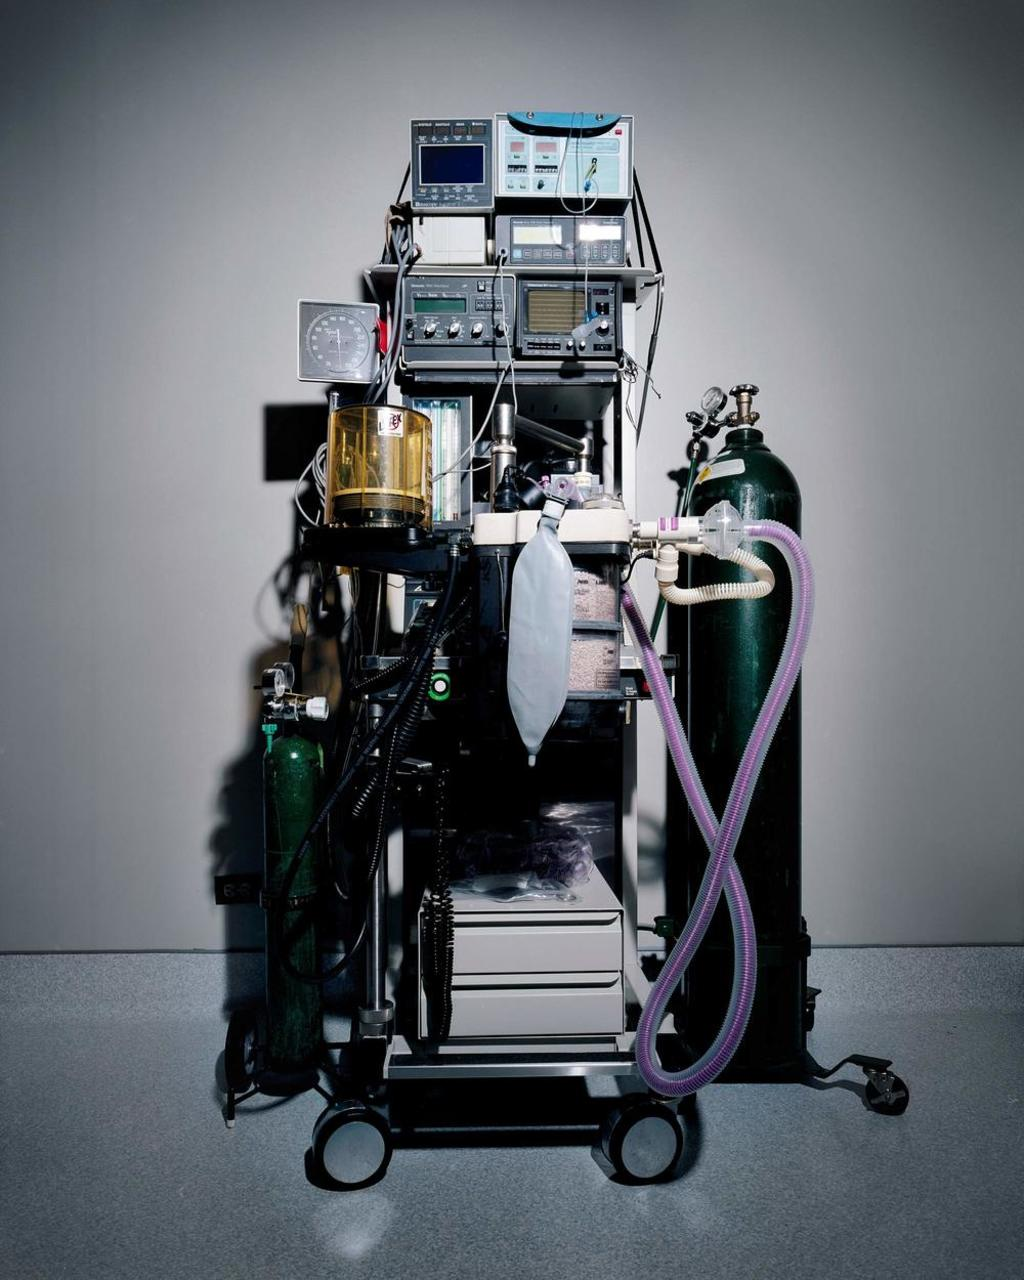 Teal Anesthesia Machine © Cara Phillips